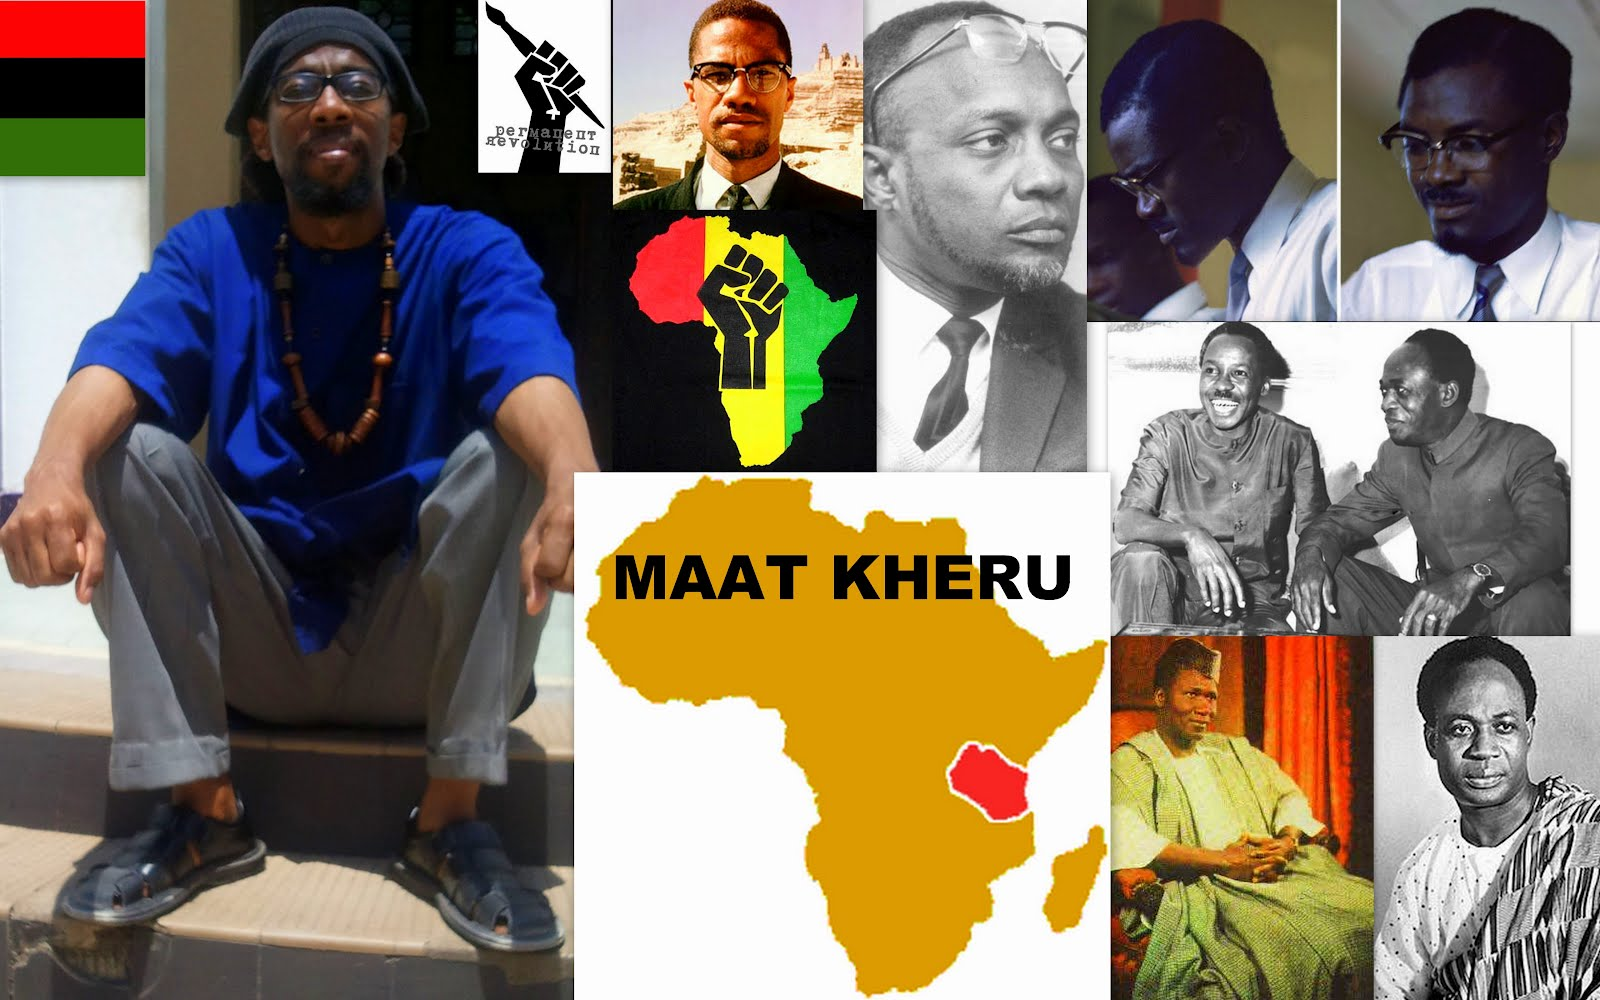 MAAT KHERU: The Voice of 62nd Century KC [21rst Century CE] Pan-Afrikanism